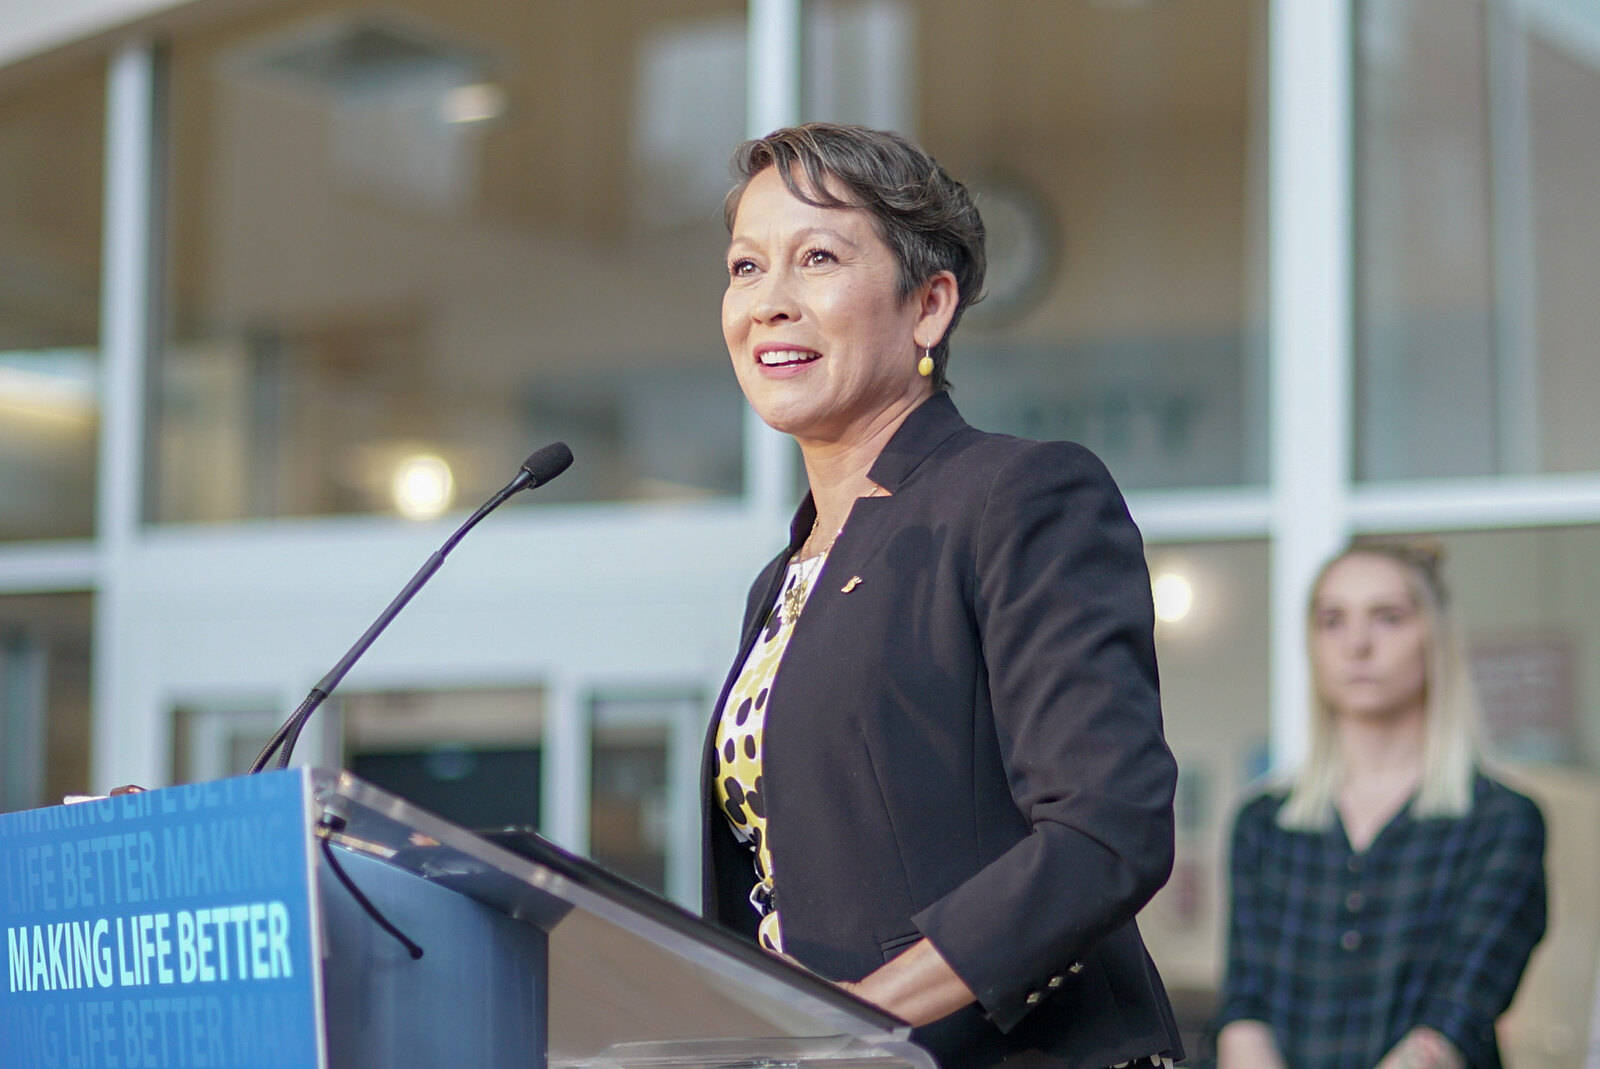 B.C.'s Minister of Advanced Education Melanie Mark in this undated photo. (B.C. government photo)